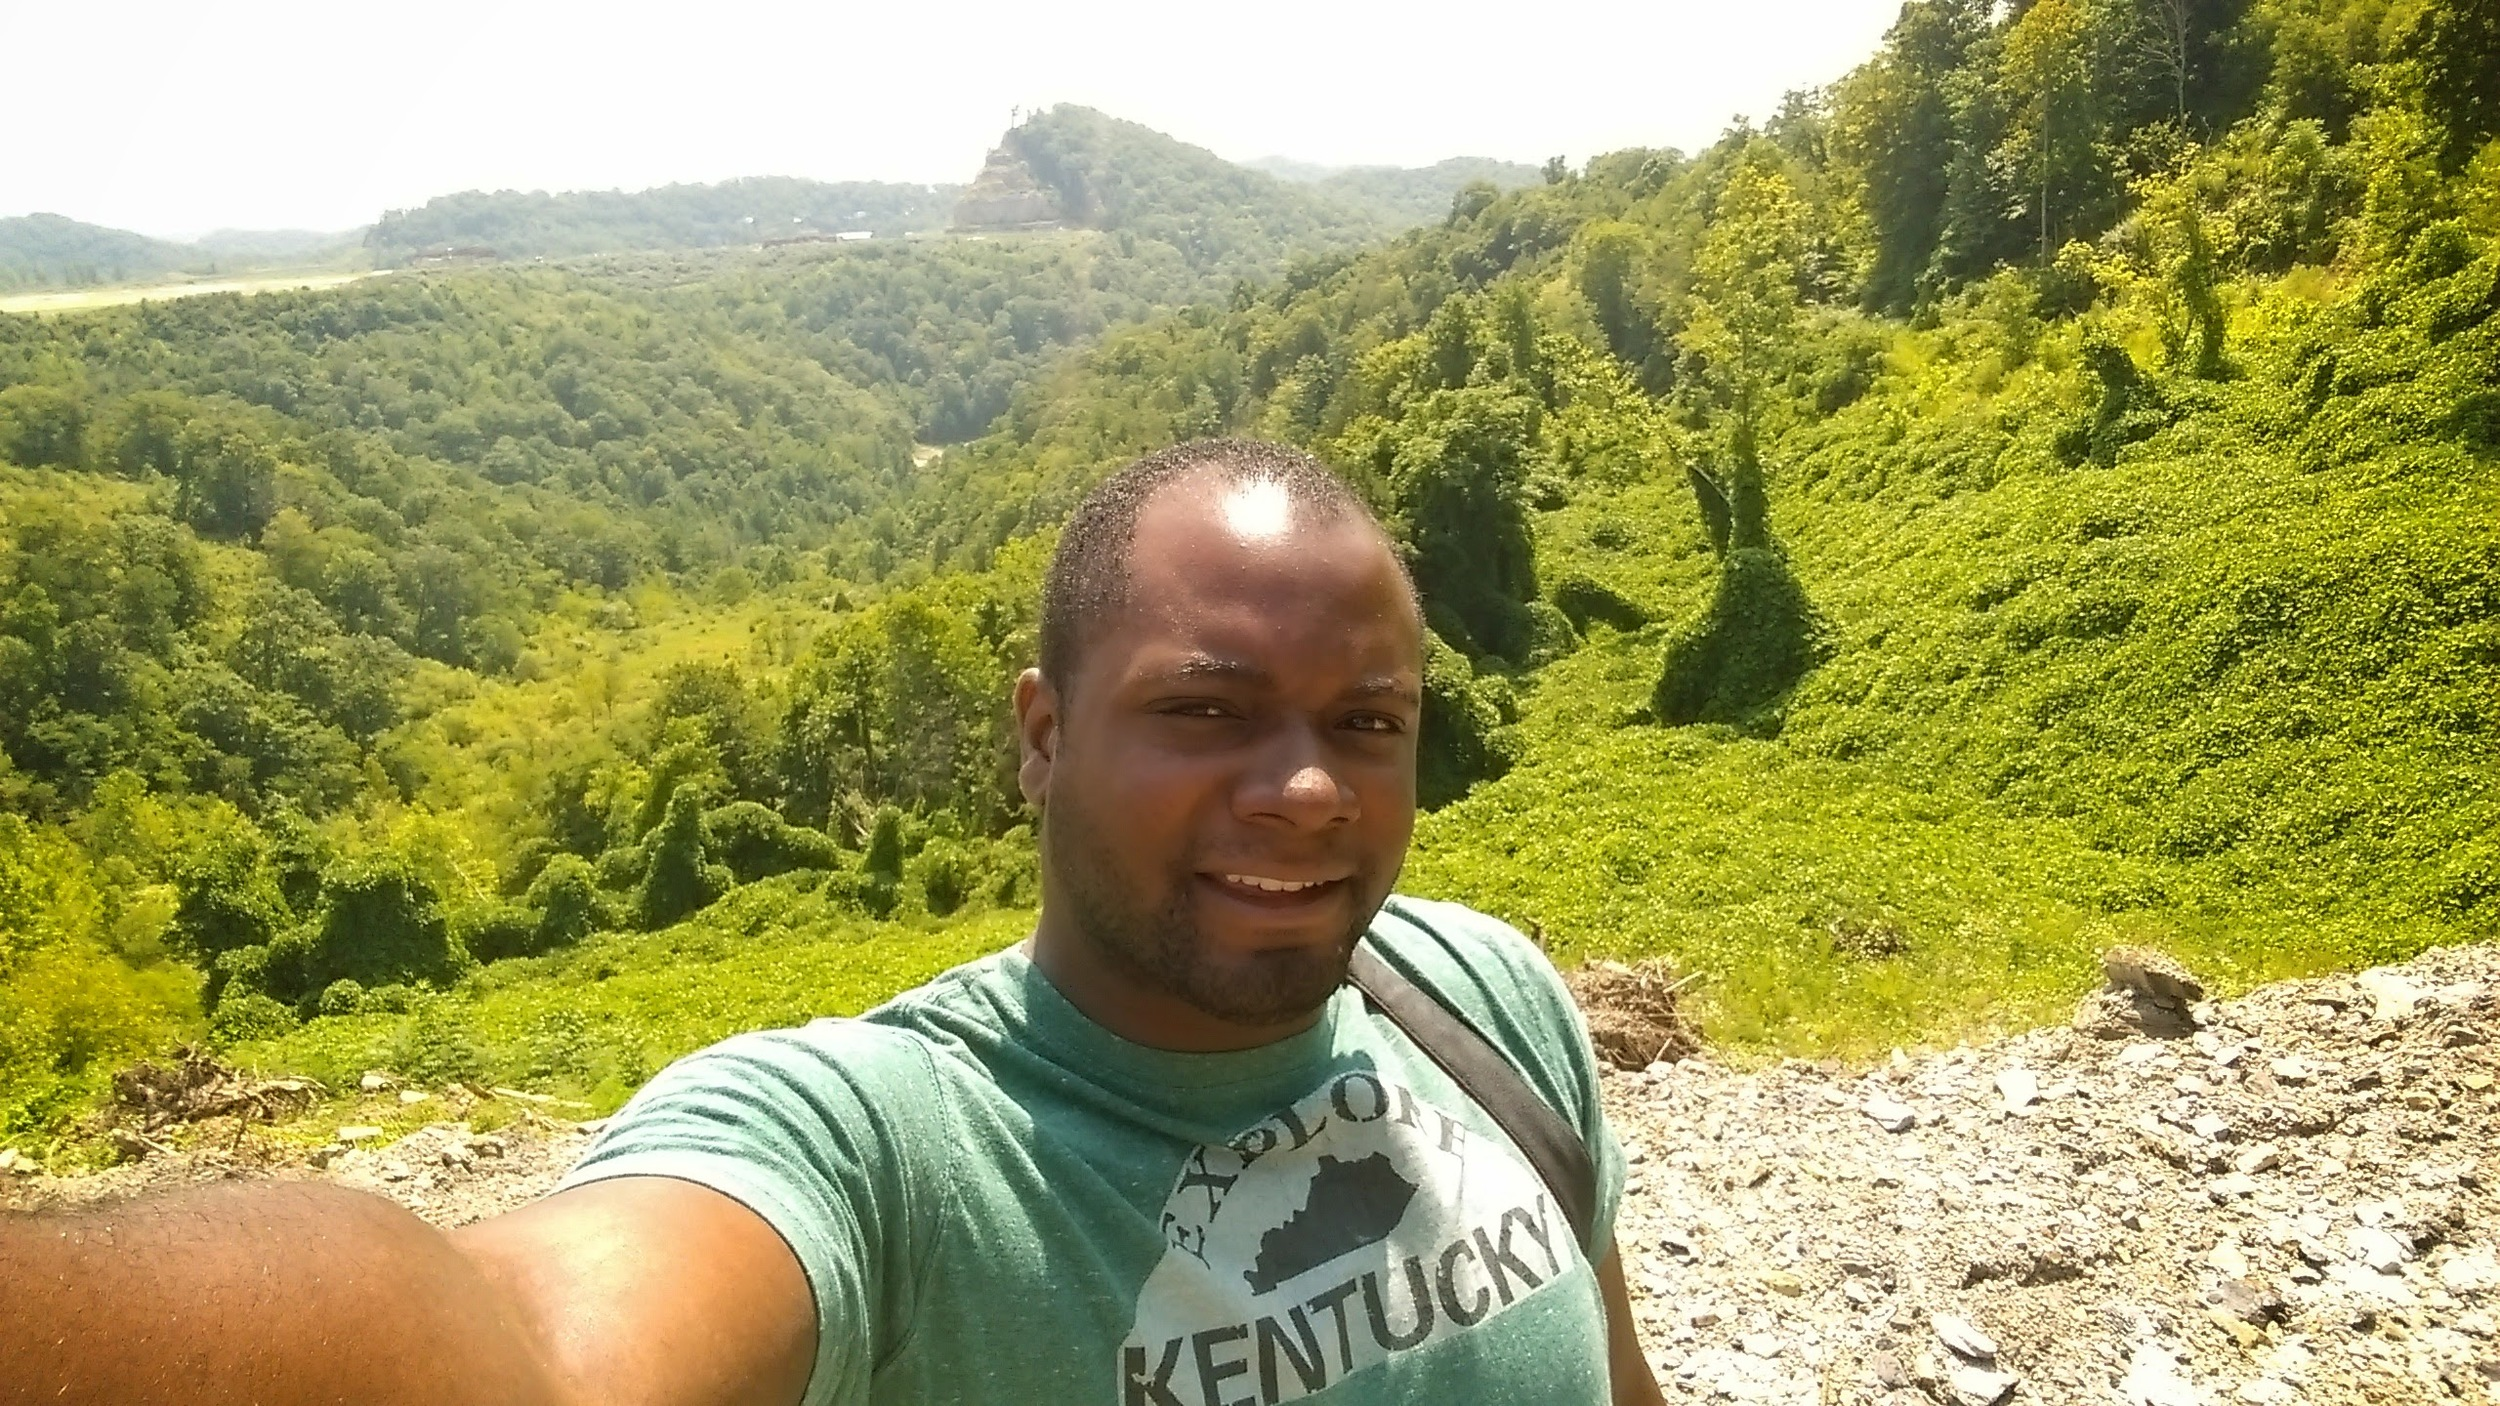 Gerry Seavo James, taking a selfie for the first time in Hazard, KY